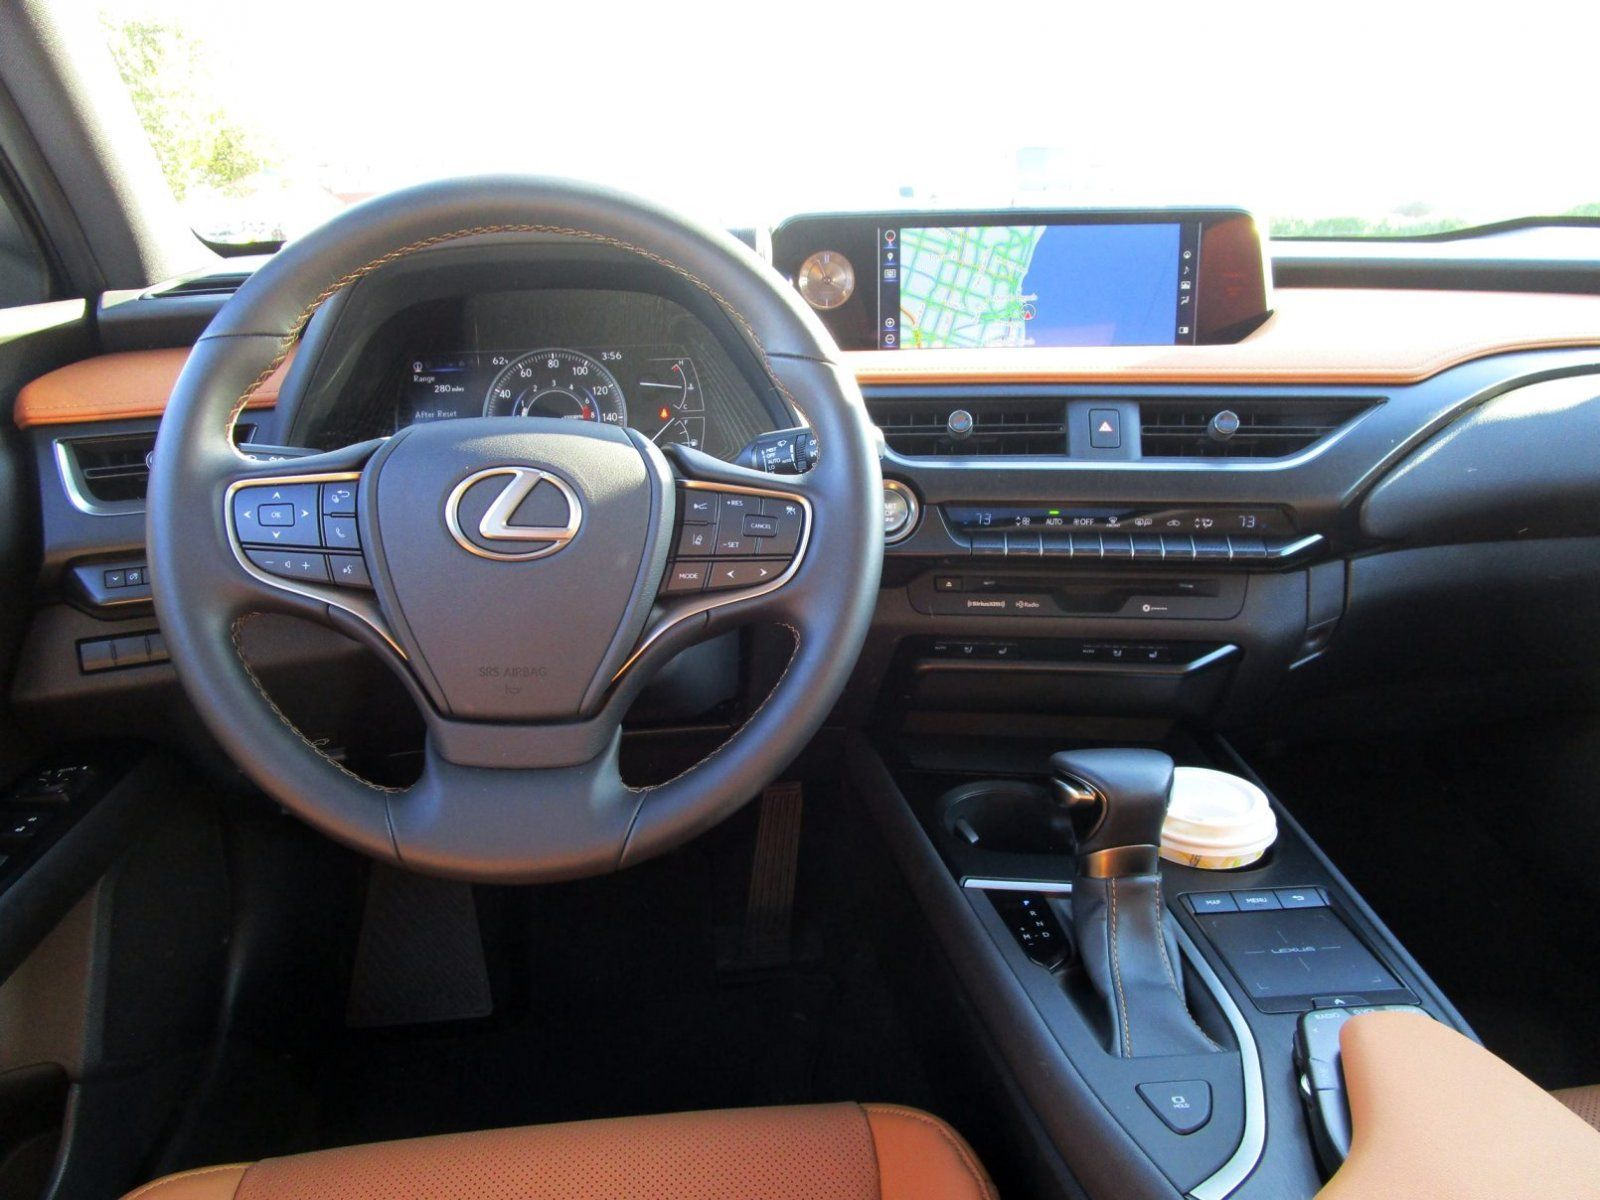 2019 Lexus Ux200 Road Test Review By Ben Lewis Latest News Car Revs Daily Com In 2020 Lexus Road Test Latest Cars